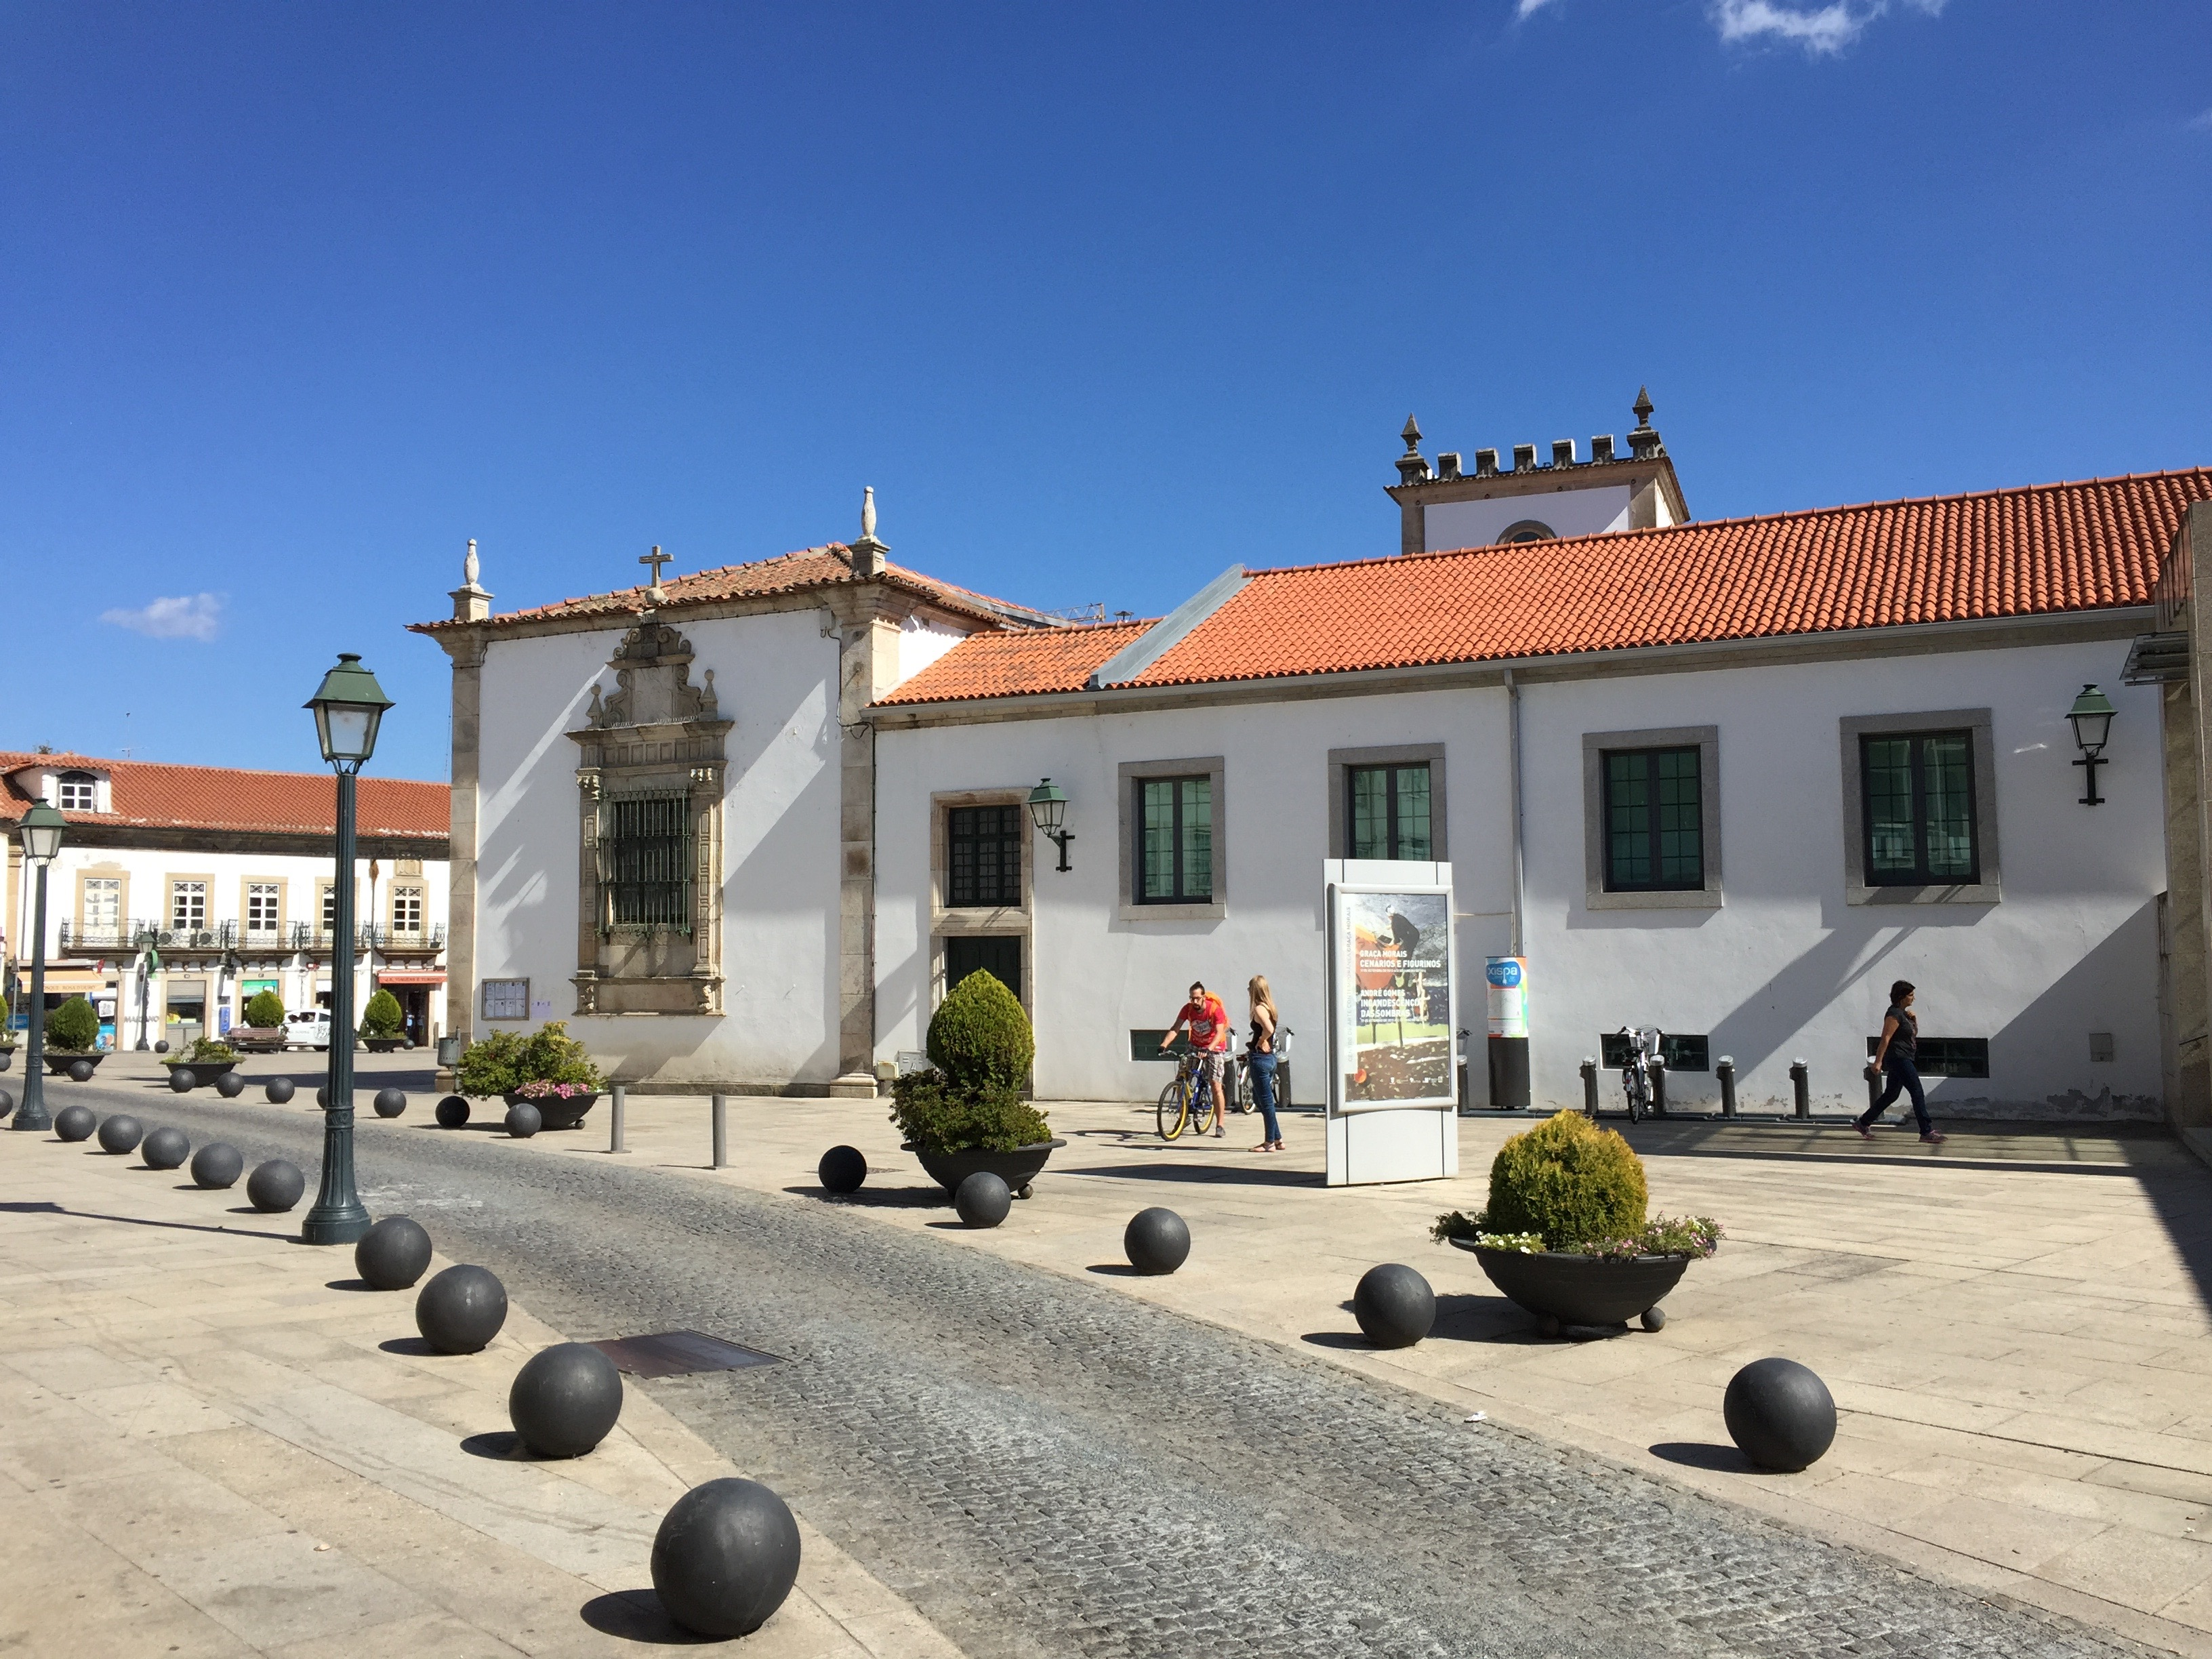 Proctor en Segovia visits a Spain-Portugal border town